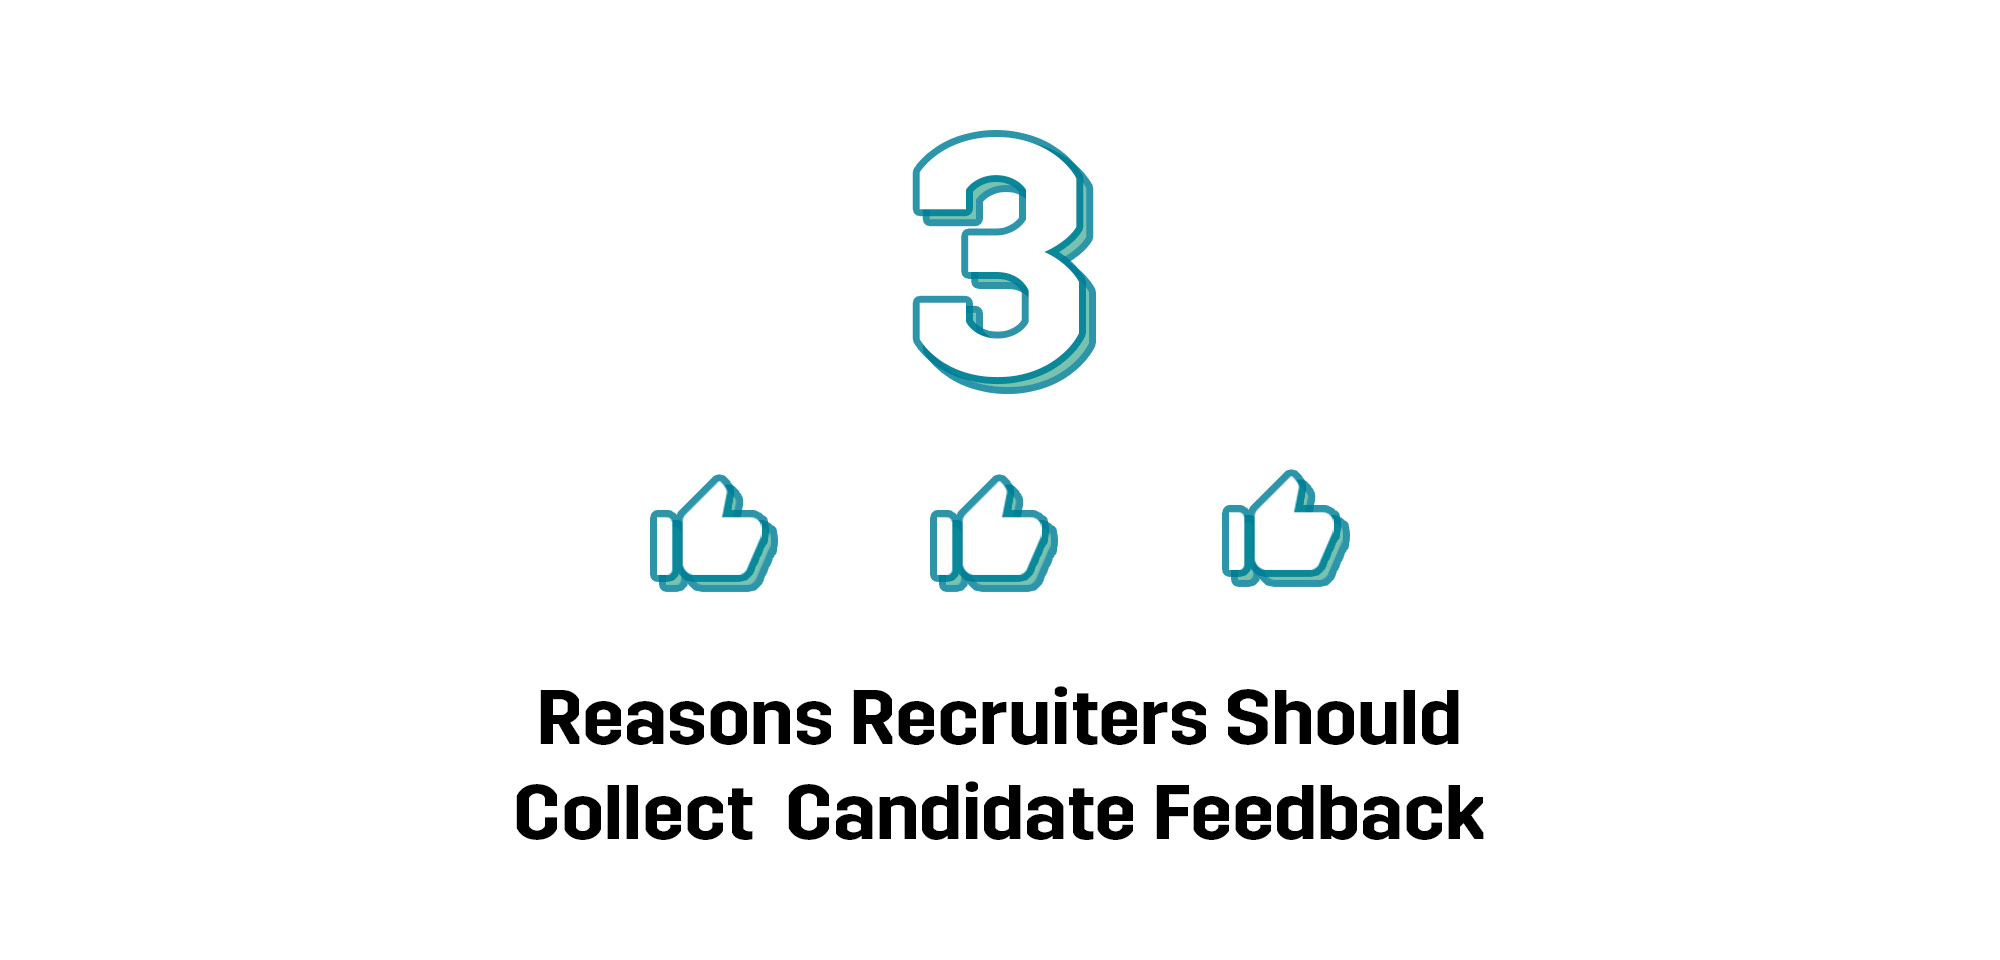 reason-recruiters-collect-candidate-feedback